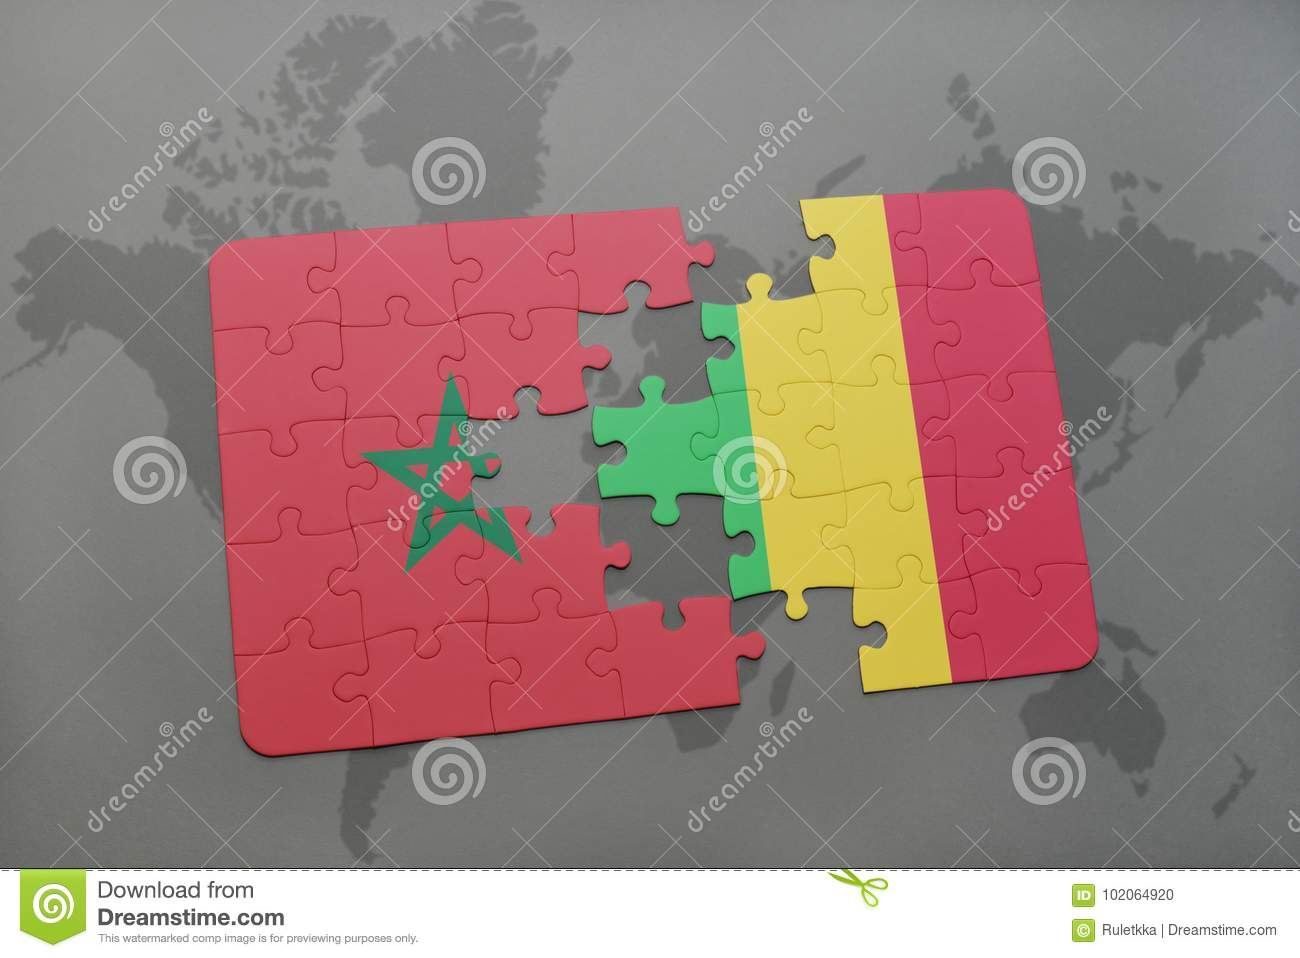 puzzle with the national flag of morocco and mali on a world map